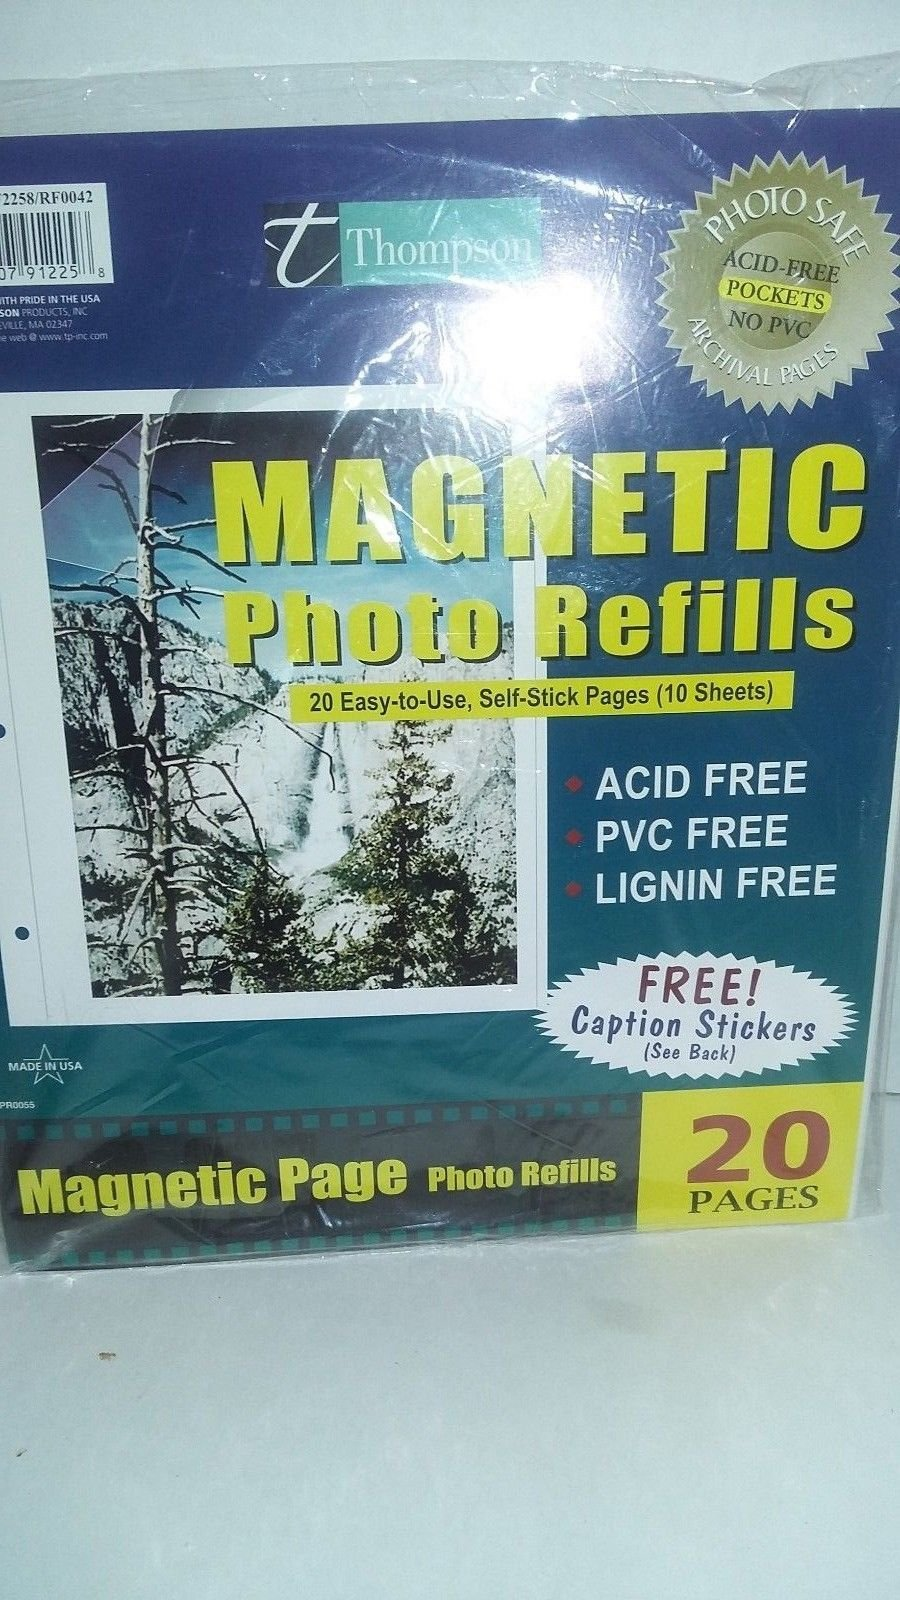 Thompson Magnetic Photo Refills 20pages